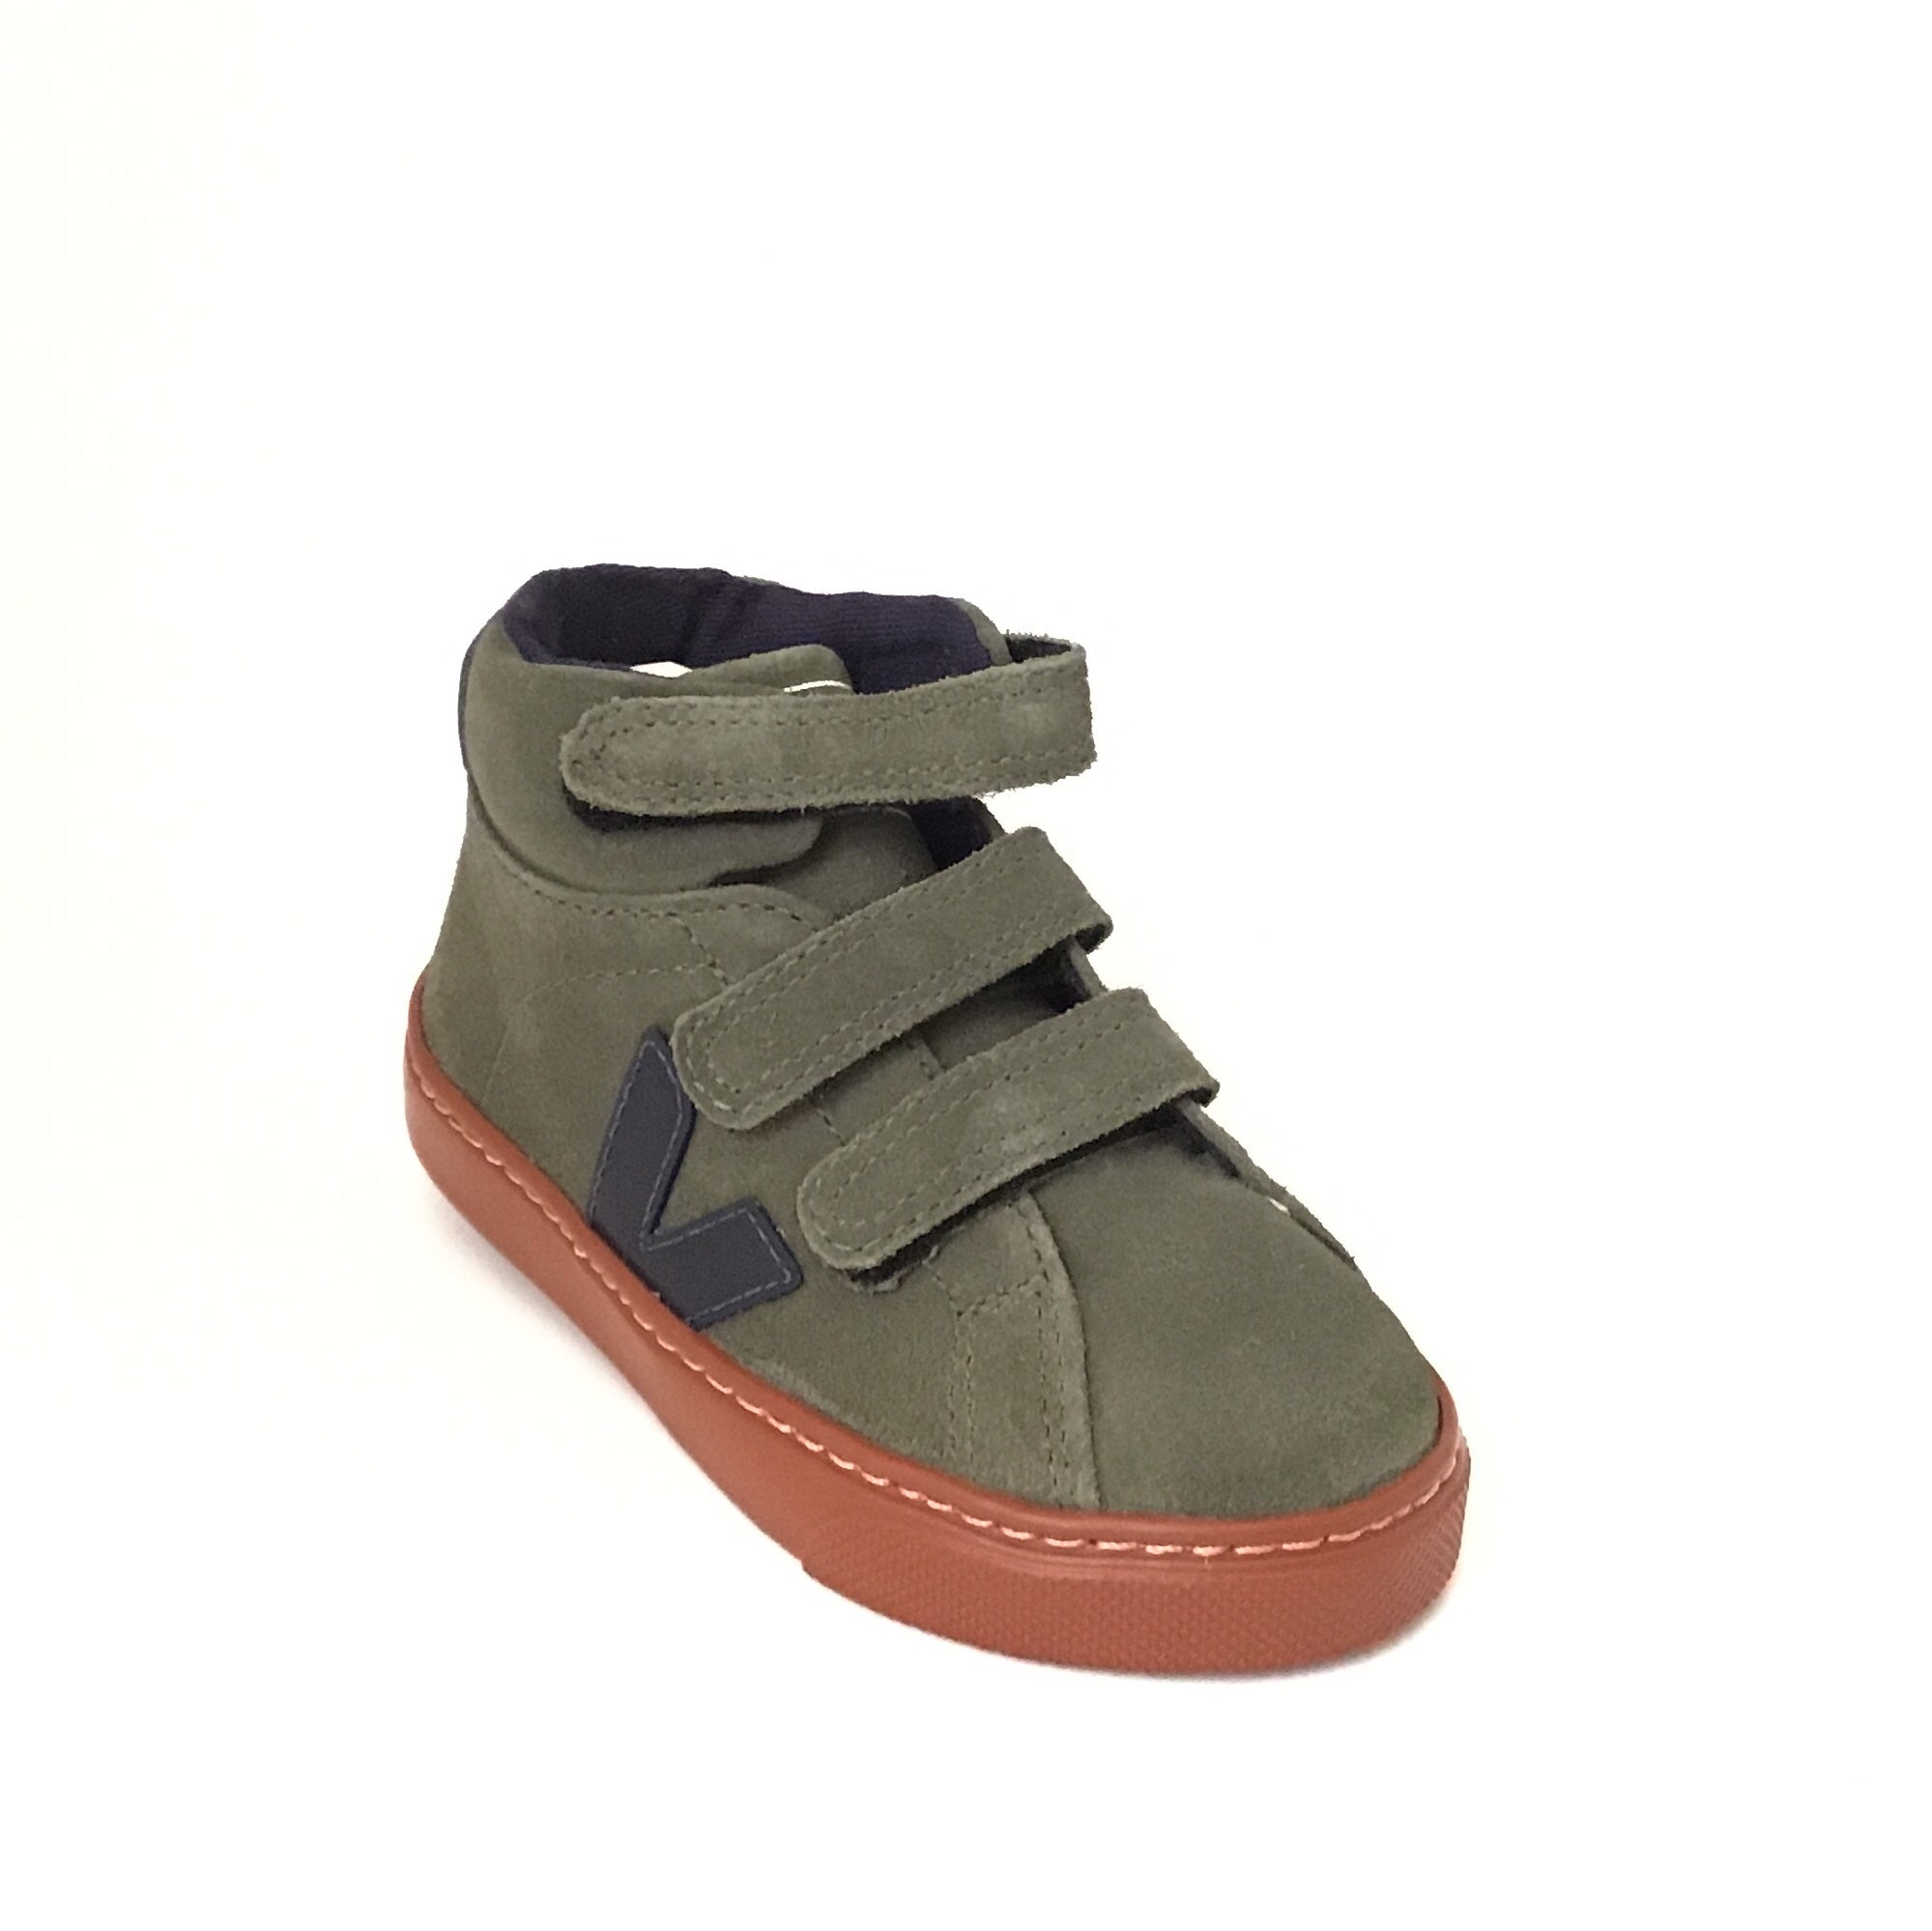 Veja Olive Green Hi Top Sneaker with Rust Color Sole